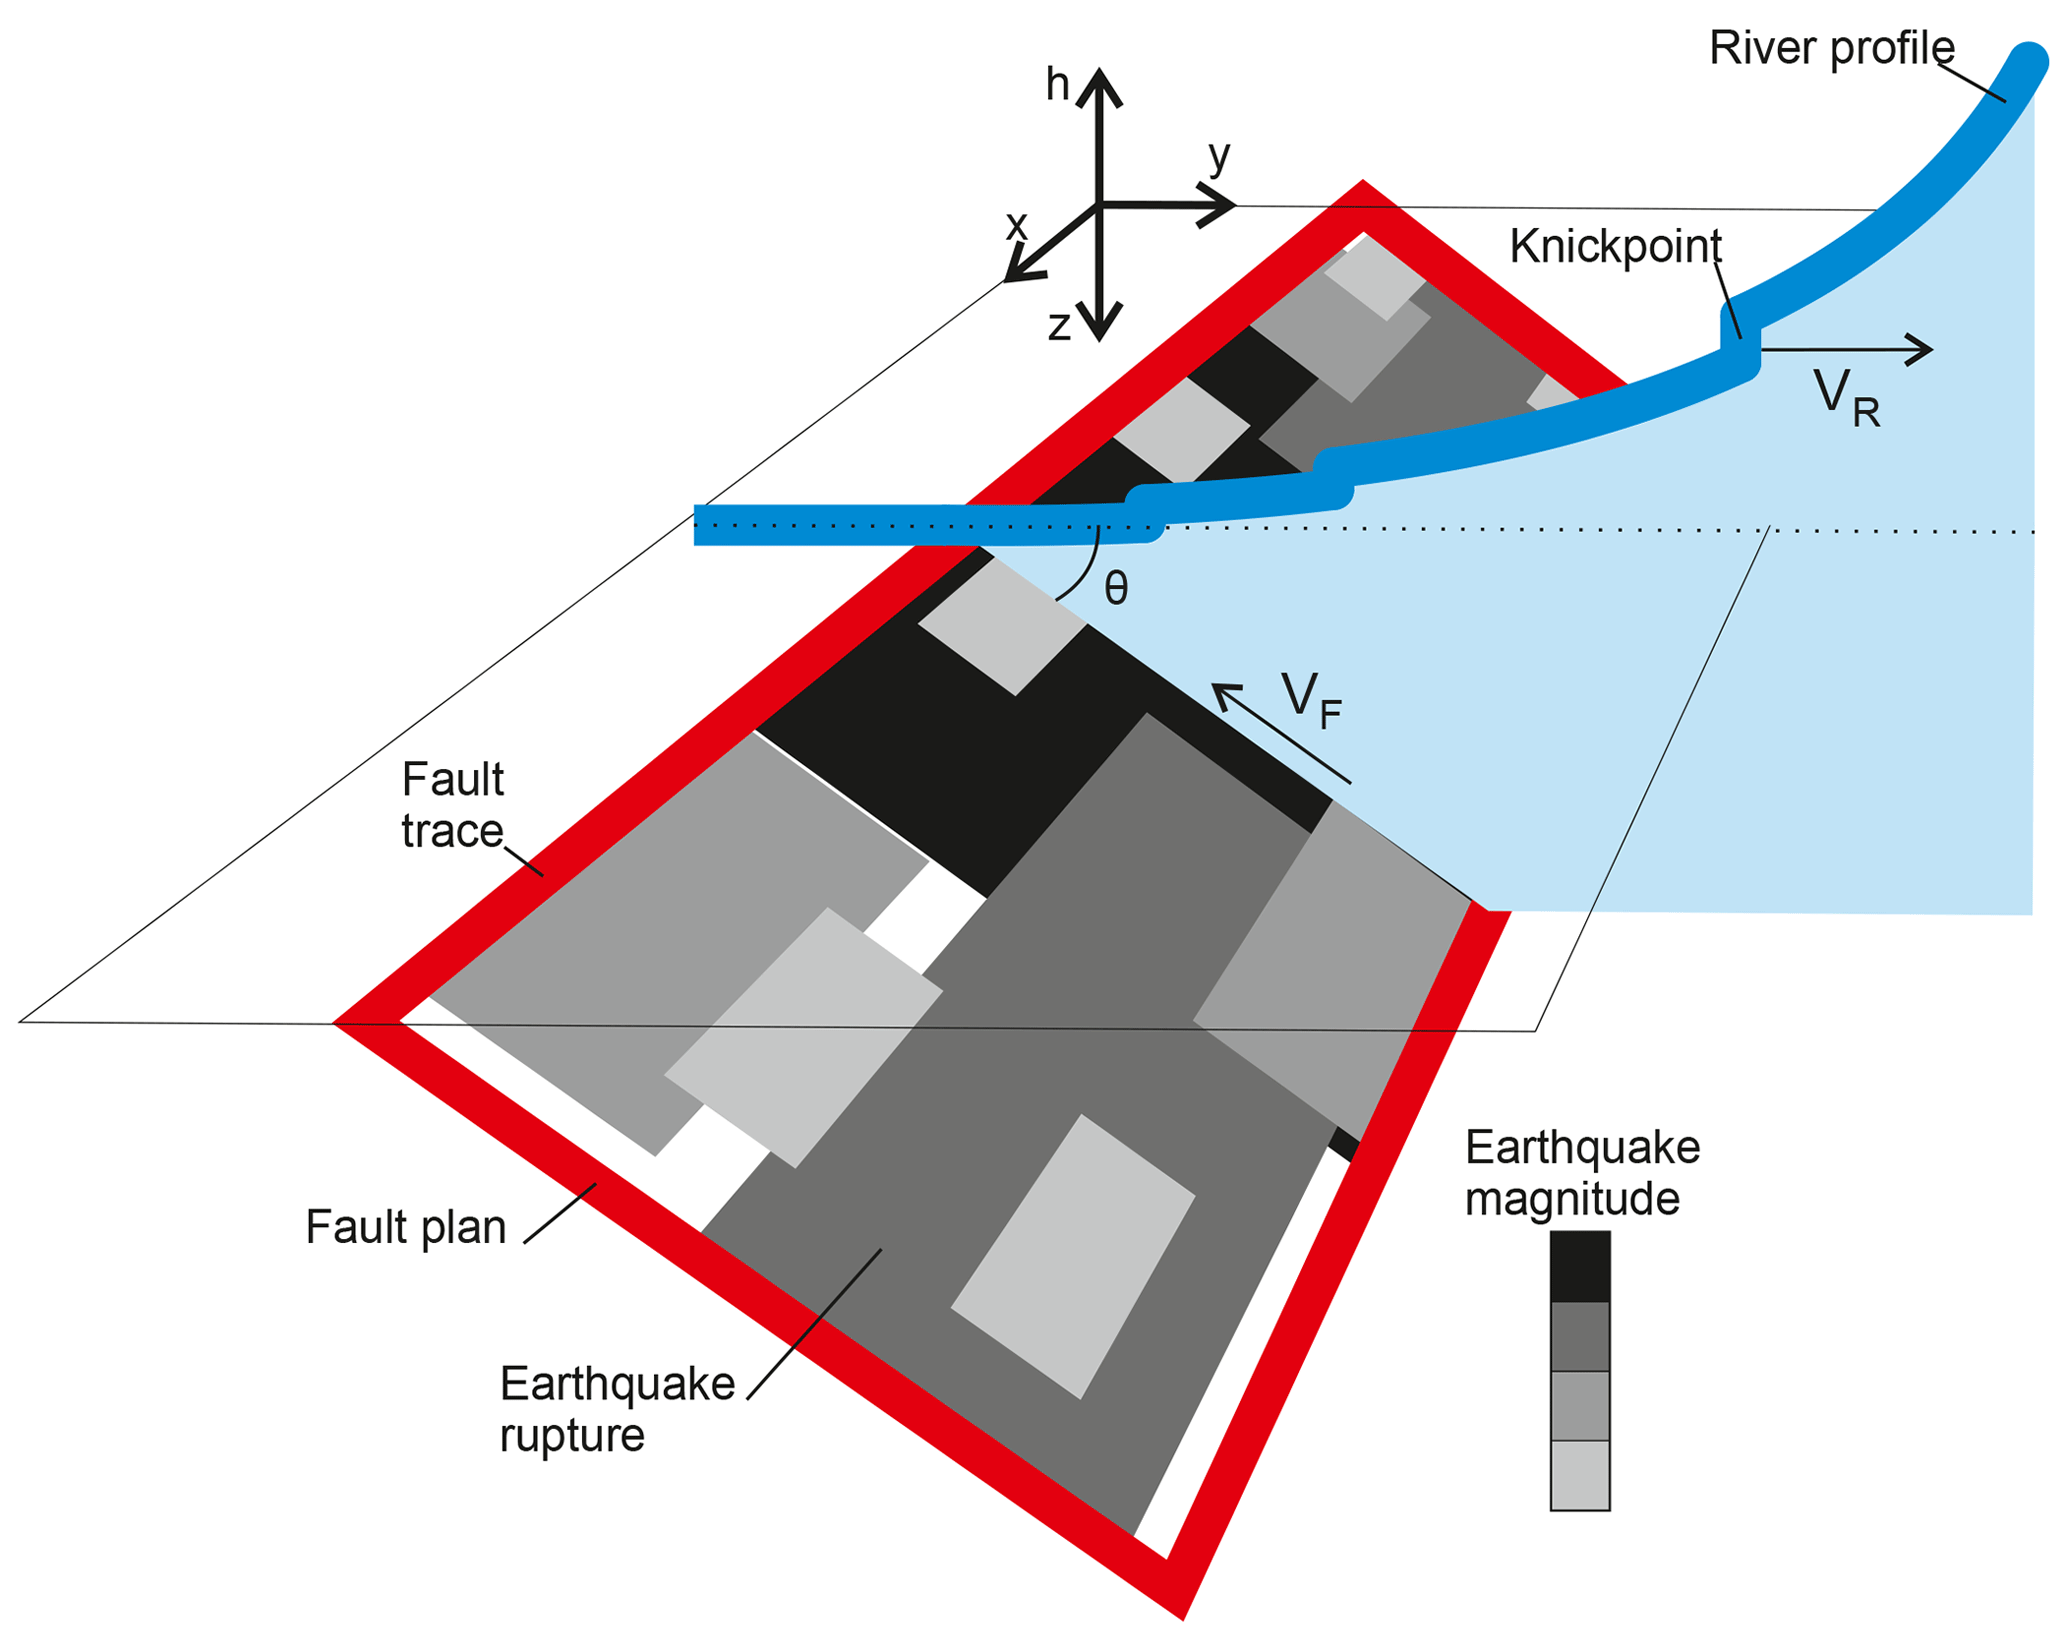 ESurf - Statistical modelling of co-seismic knickpoint